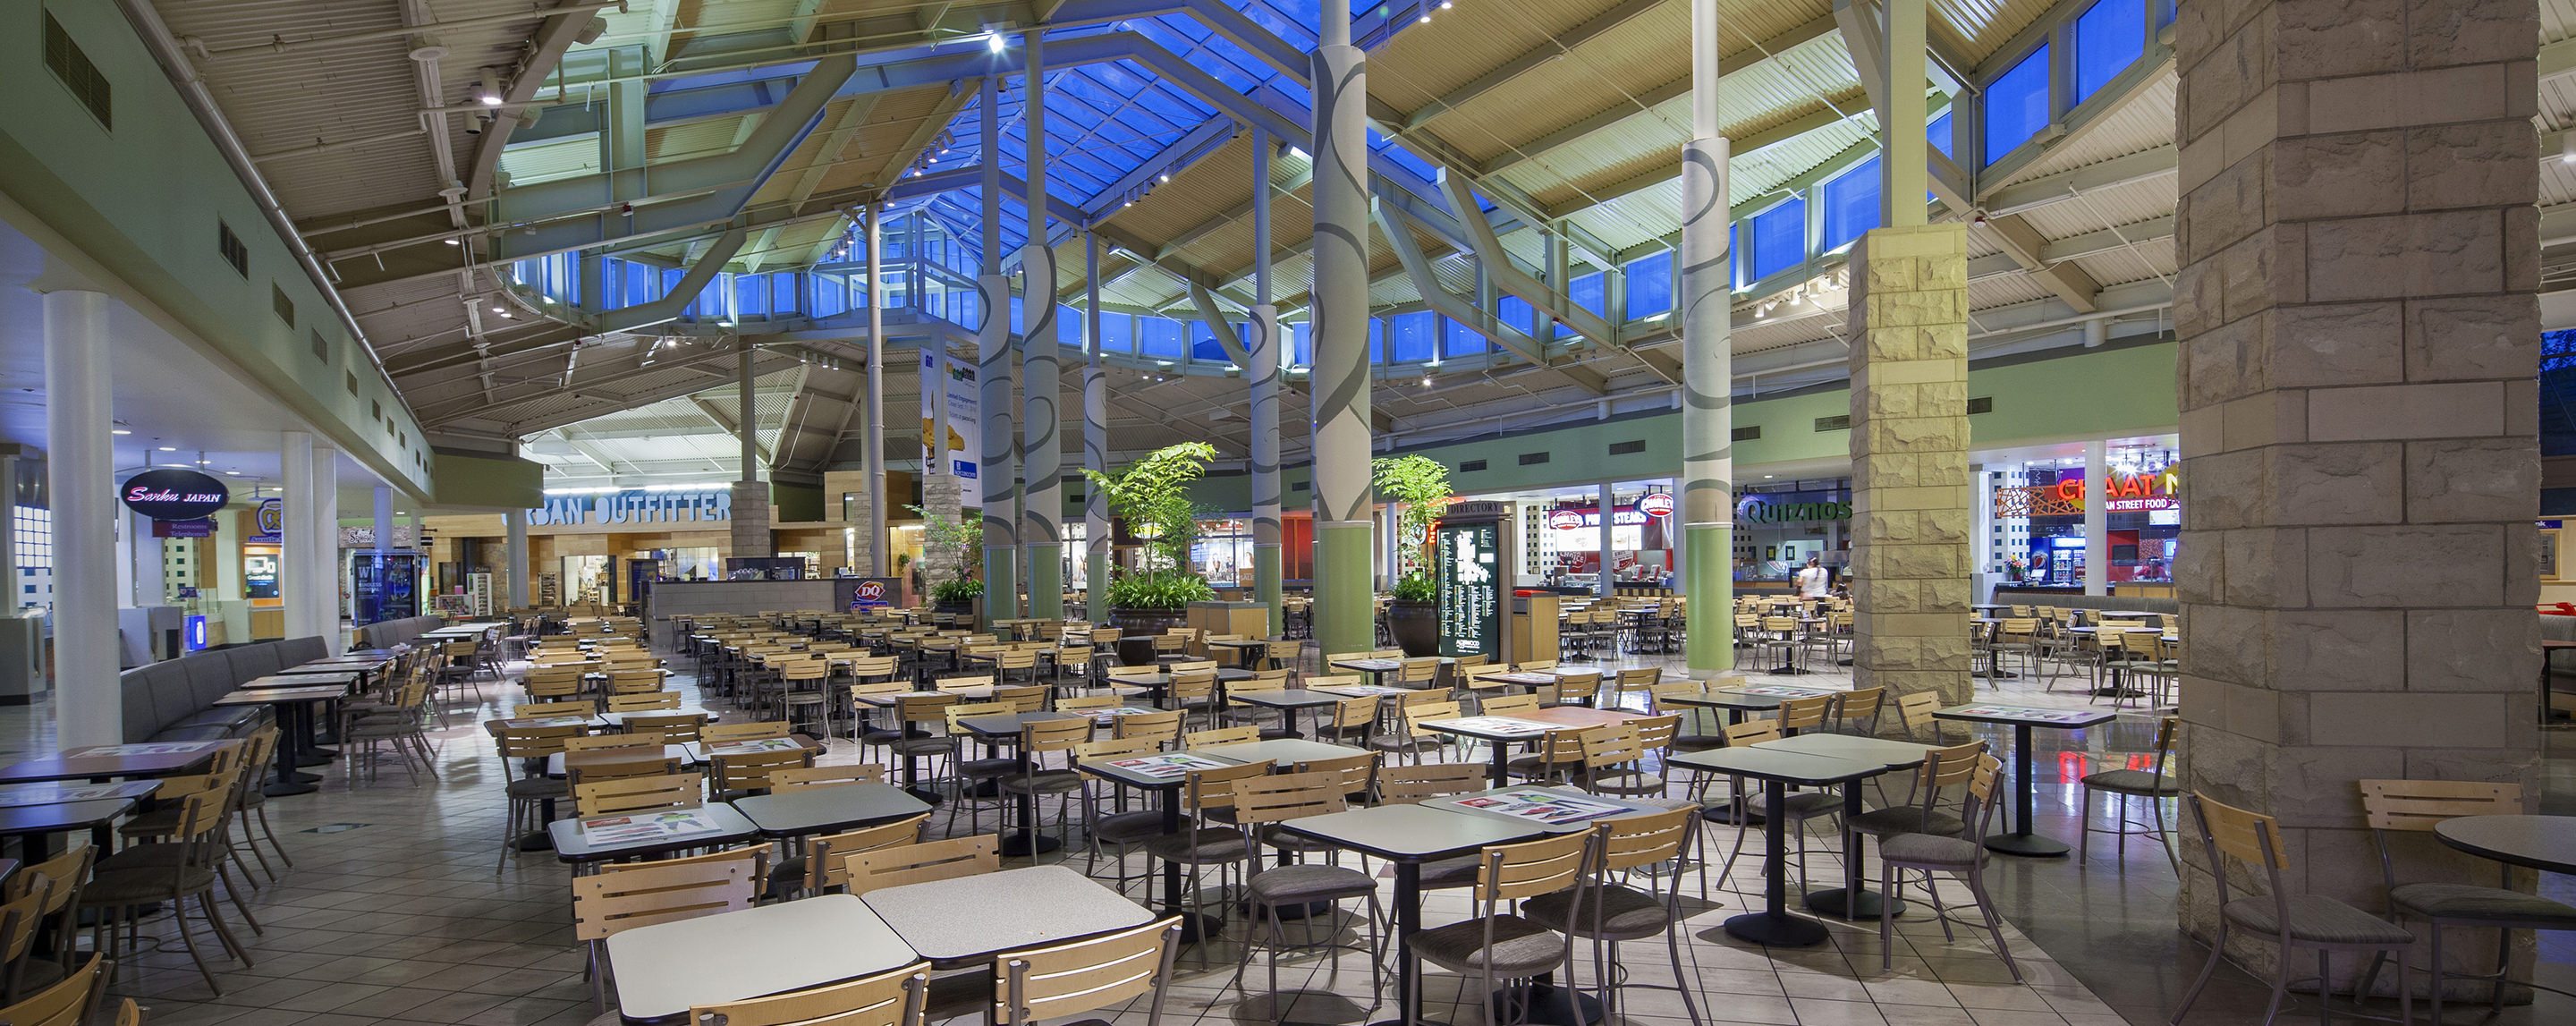 The Alderwood food court is filled with tables and chairs for shoppers to relax and grab a bite to eat.